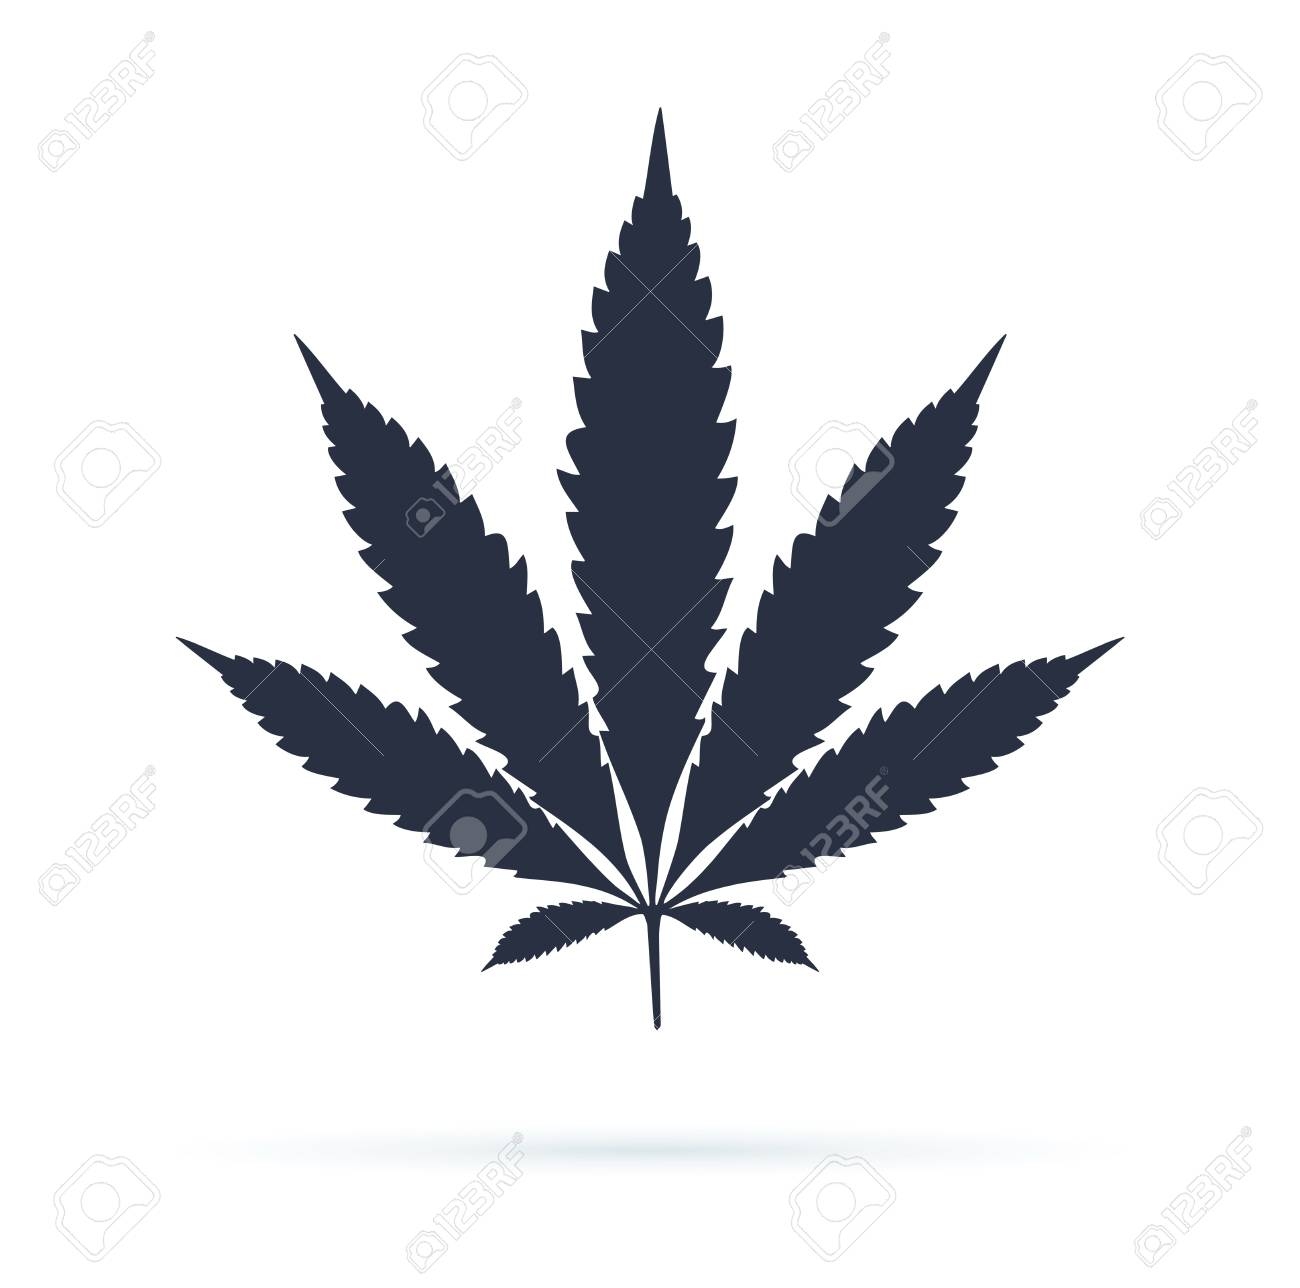 Cannabis sign icon. Vector icon. Dope ganja symbol, cannabis leaf silhouette. Medical weed legalize drug concept sign. - 121663490